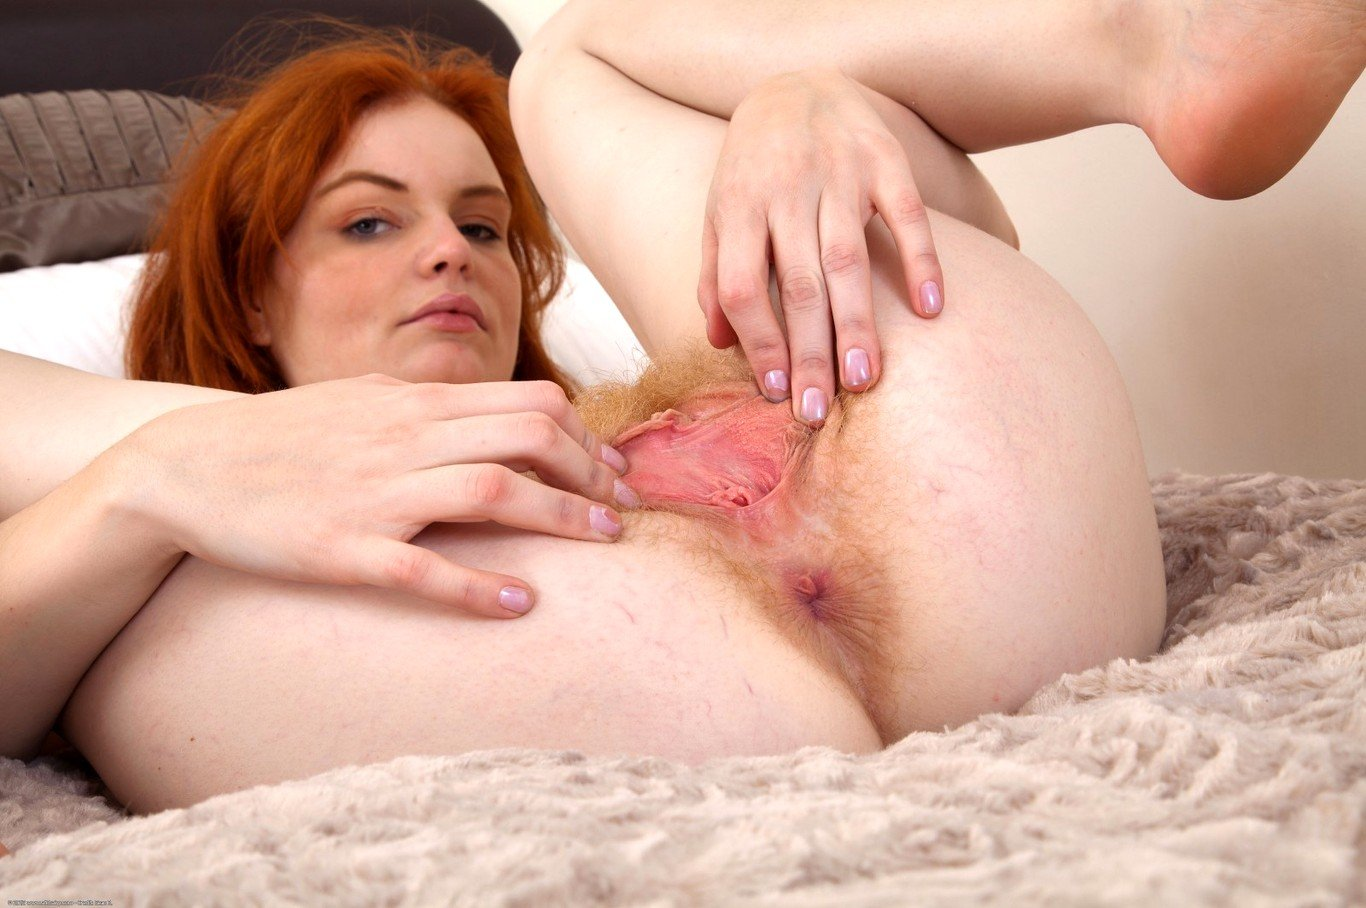 Young red pussy pics and porn images